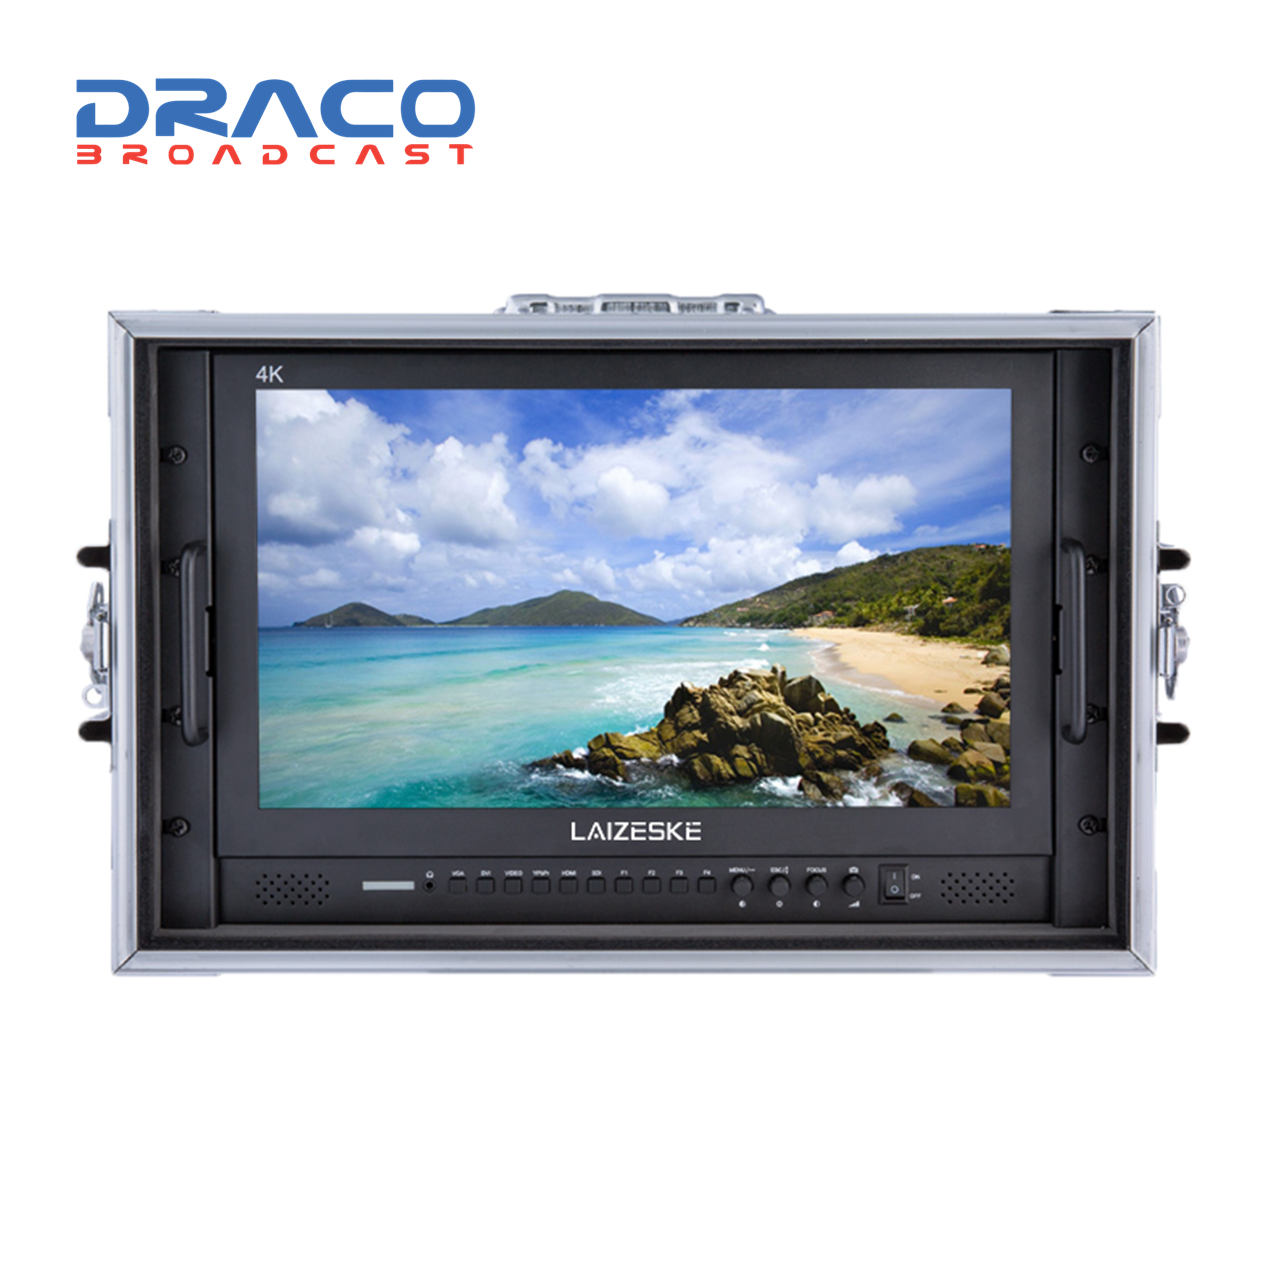 Laizeske 17.3″ Full-HD Carry-On Broadcast Director Monitor with HDMI